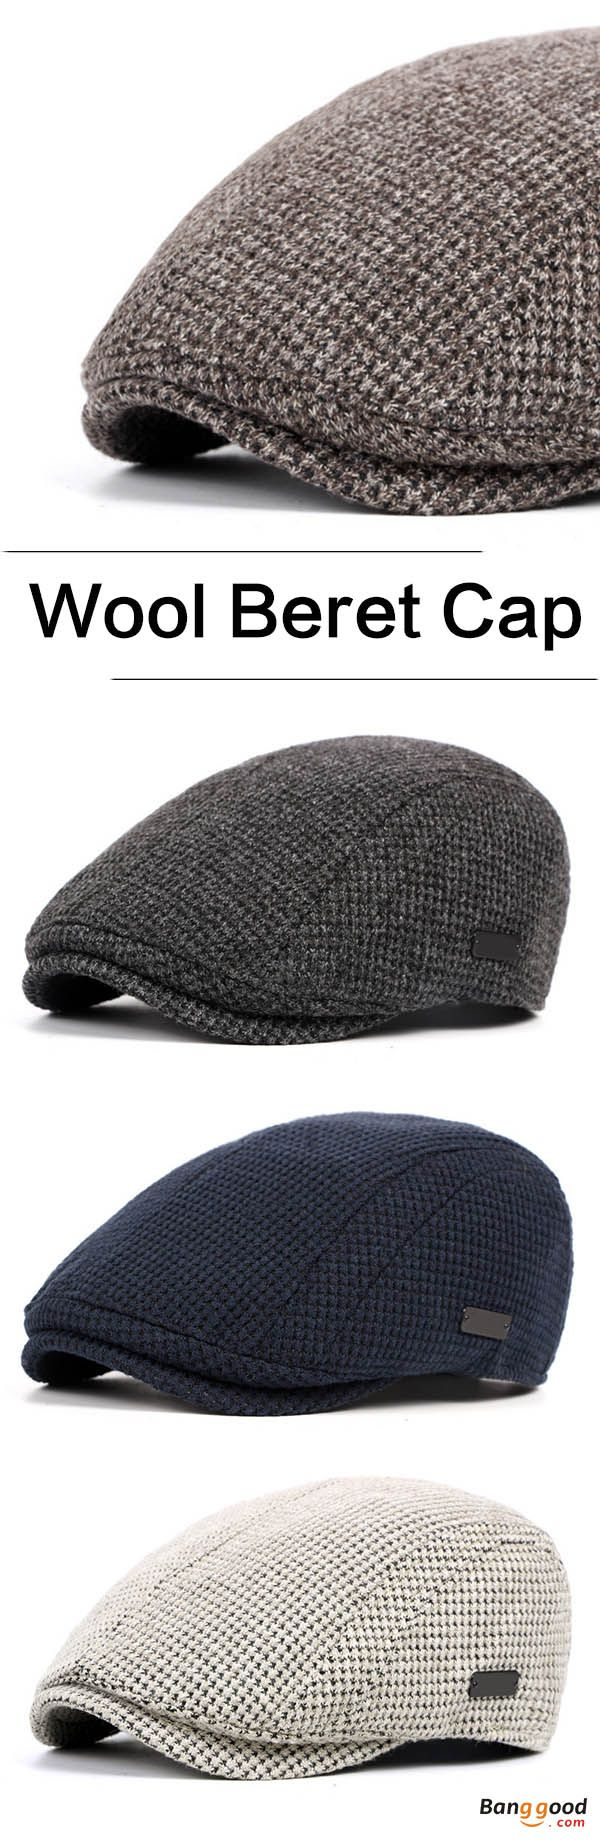 Men's Knitted Wool Gatsby Beret Cap Golf Driving Flat Cabbie Newsboy Hat. Warm hat for men,  knitted wool, perfect for winter. 5 colors to choose. Buy now!